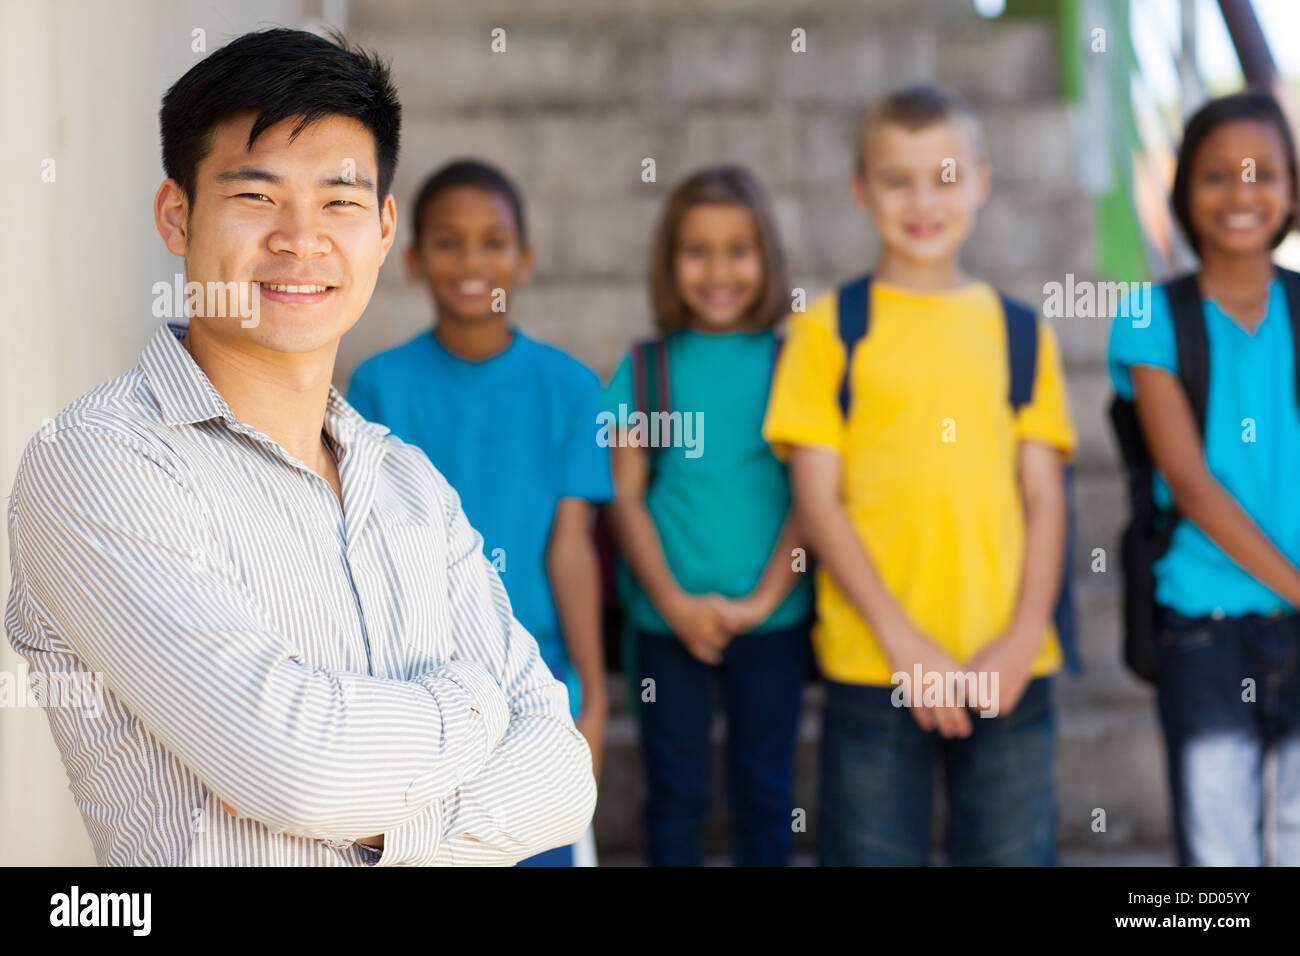 handsome male elementary educator with students on background - Stock Image